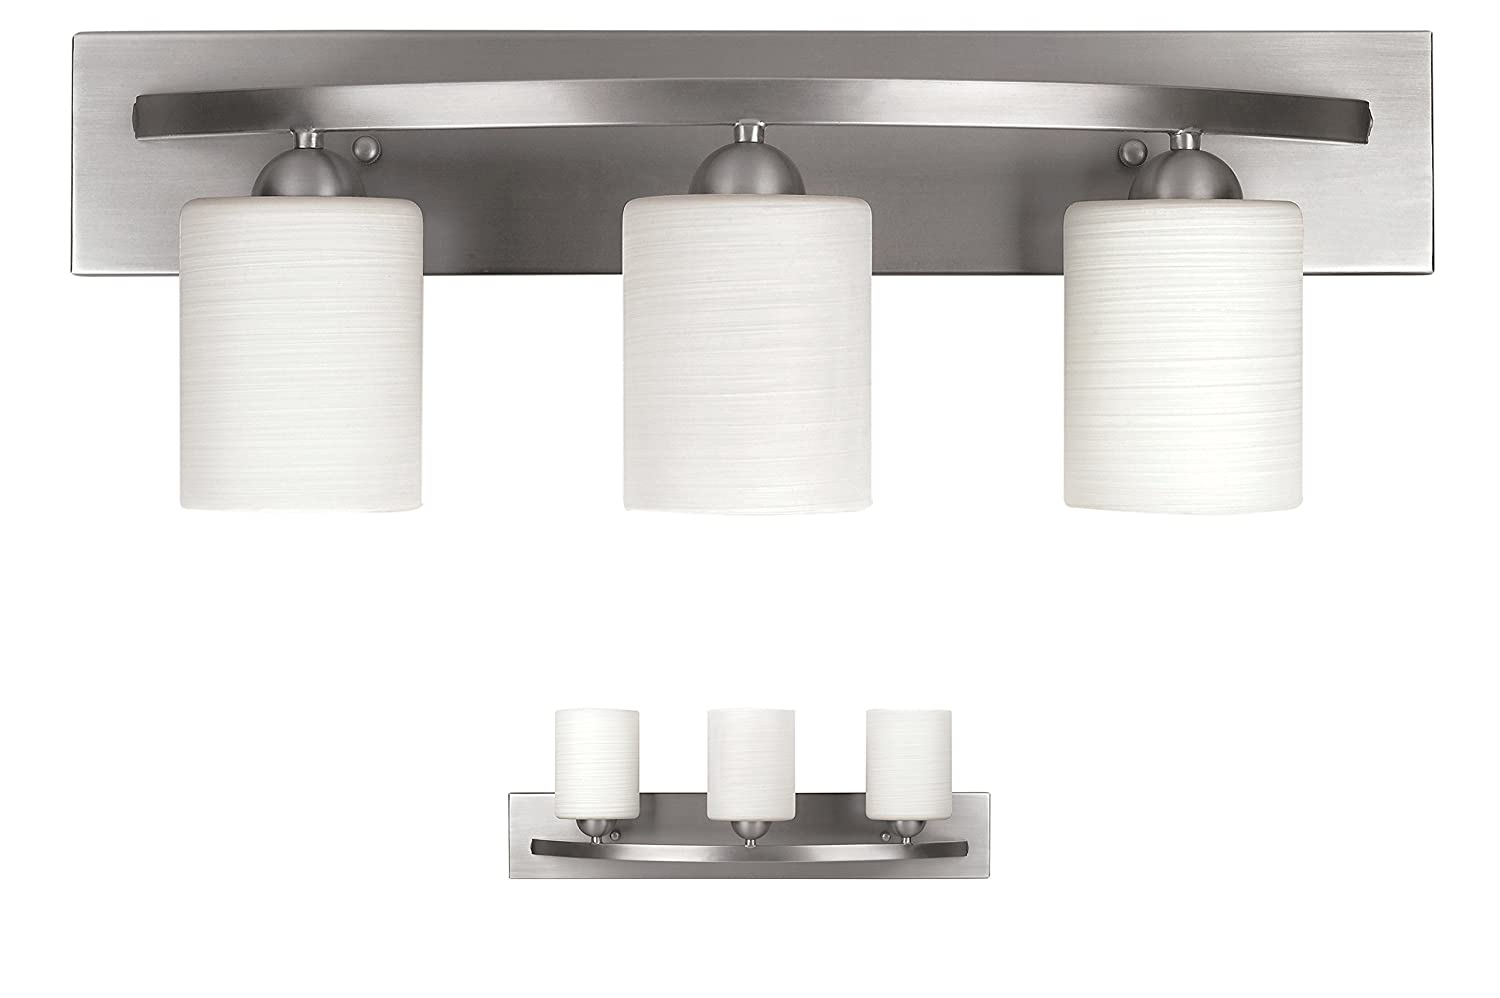 Bon WholesalePlumbing IVL370A03BPT 3 Bulb Vanity Light Fixture Bath Interior  Lighting, Brushed Nickel     Amazon.com